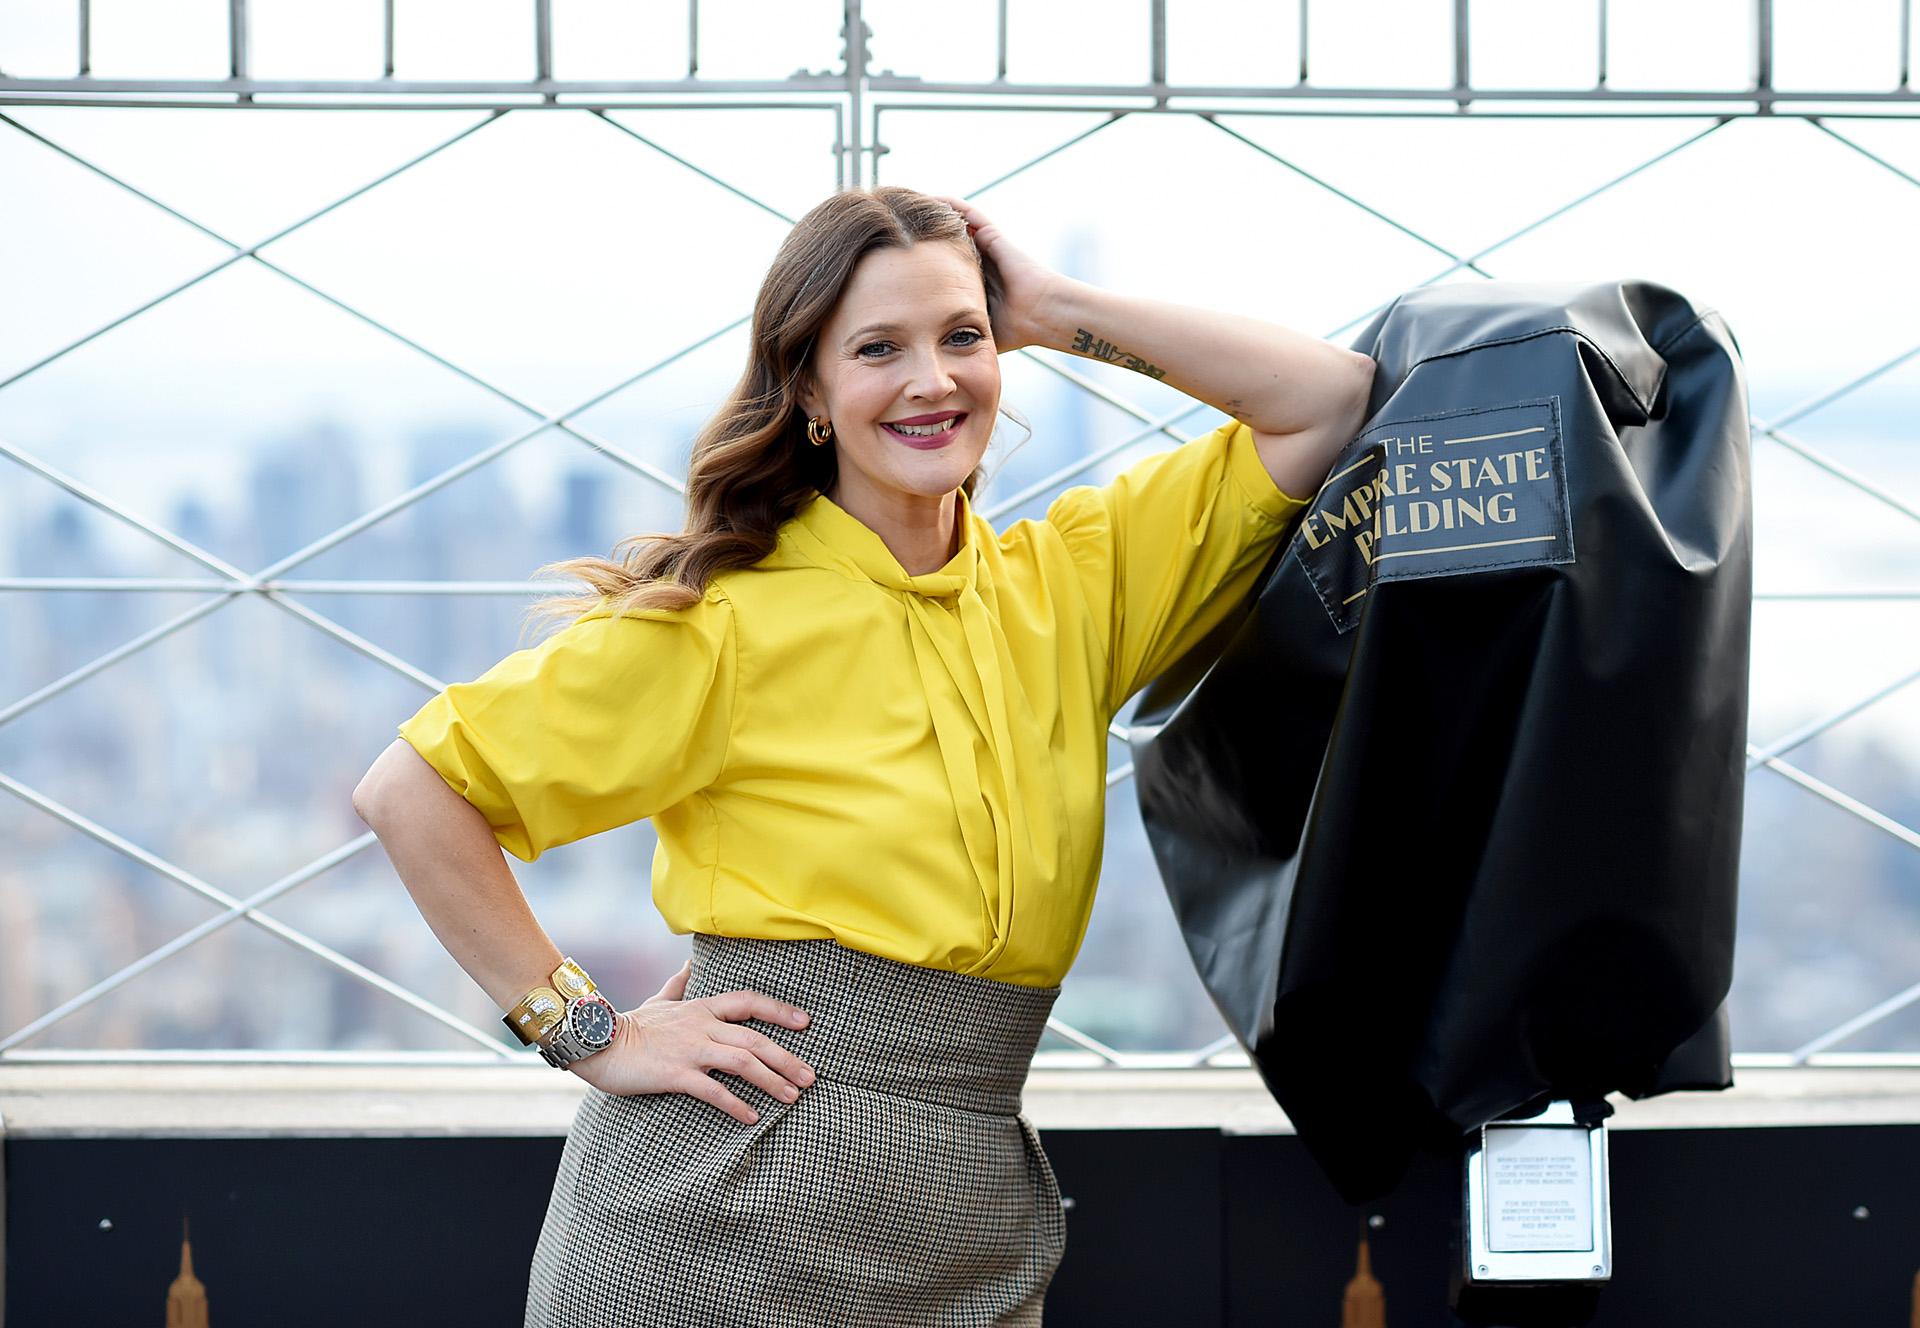 """NEW YORK, NEW YORK - SEPTEMBER 14: Drew Barrymore celebrates the Launch of The Drew Barrymore Show at The Empire State Building on September 14, 2020 in New York City. Dimitrios Kambouris/""""Getty Images for Empire State Realty Trust/AFP"""